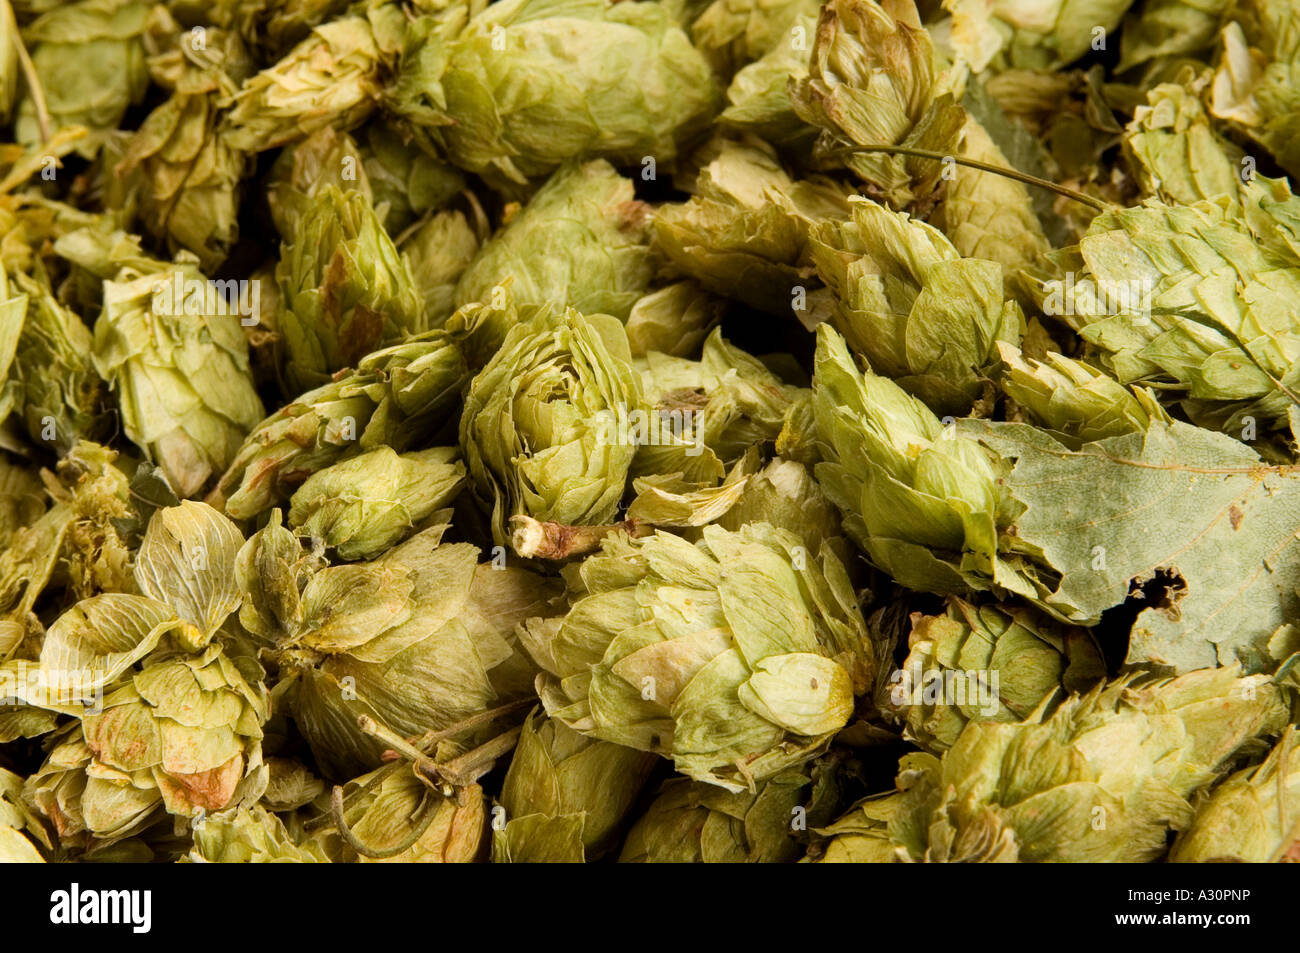 Hops picked and ready for beer making. Picture by Jim Holden. - Stock Image